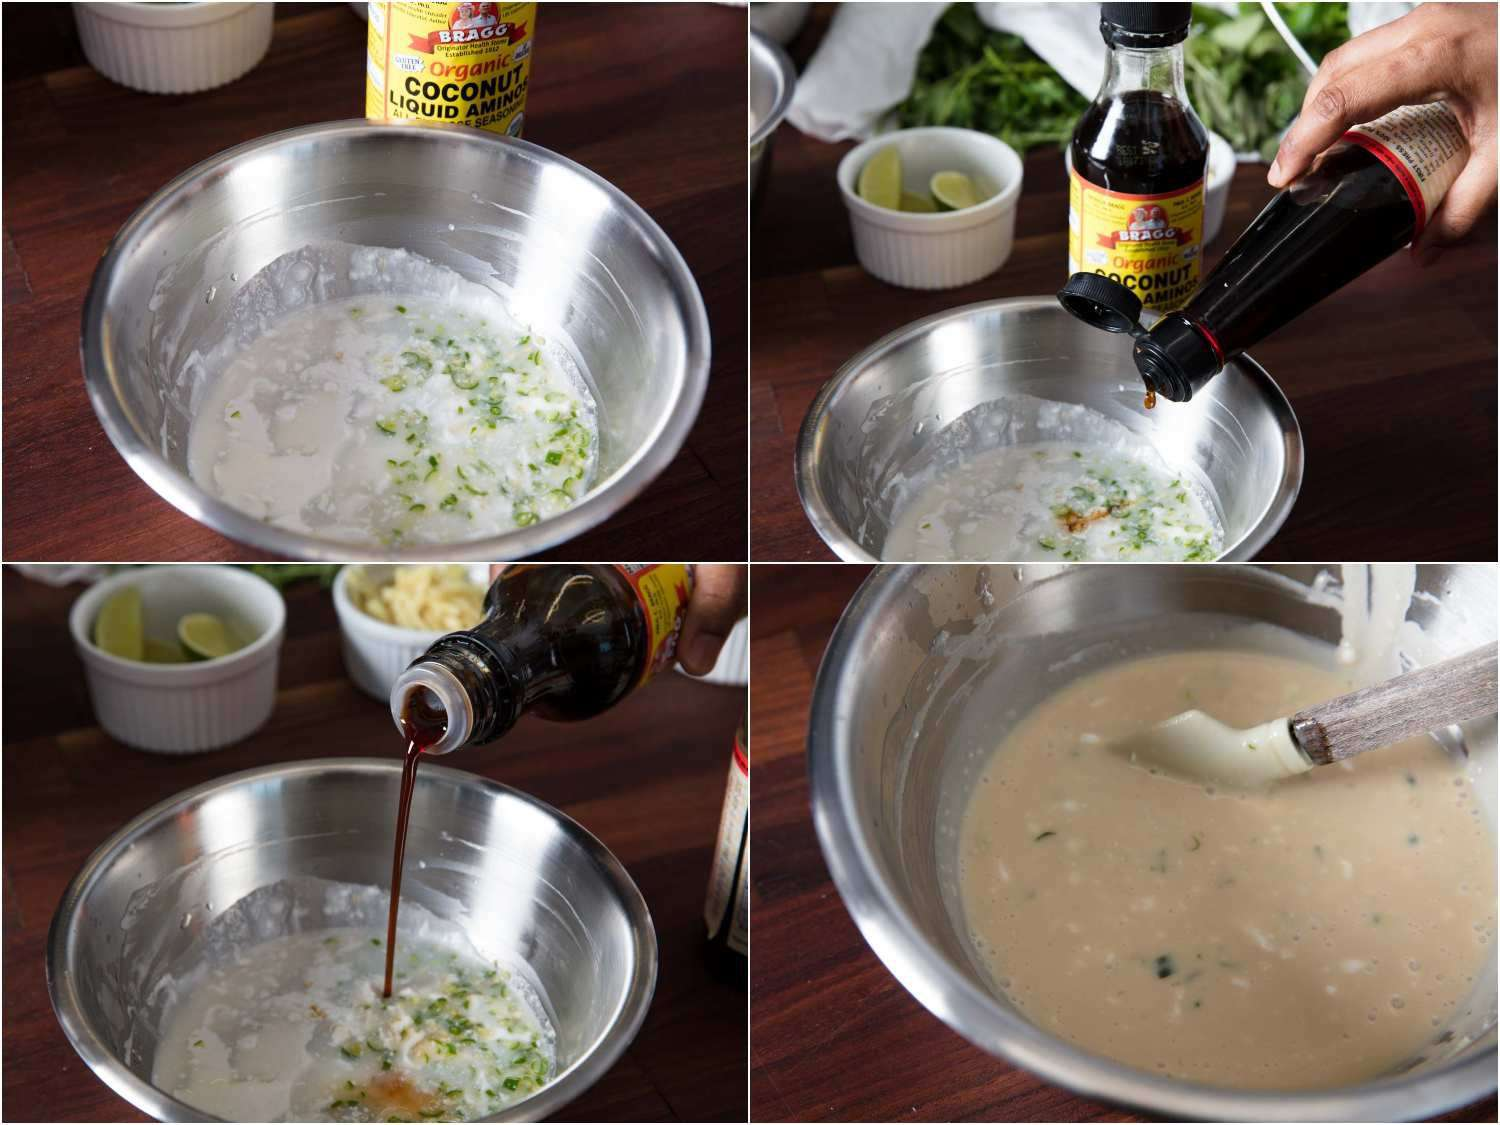 Combining coconut cream, coconut aminos, fish sauce, Thai chili, and lime into dipping sauce